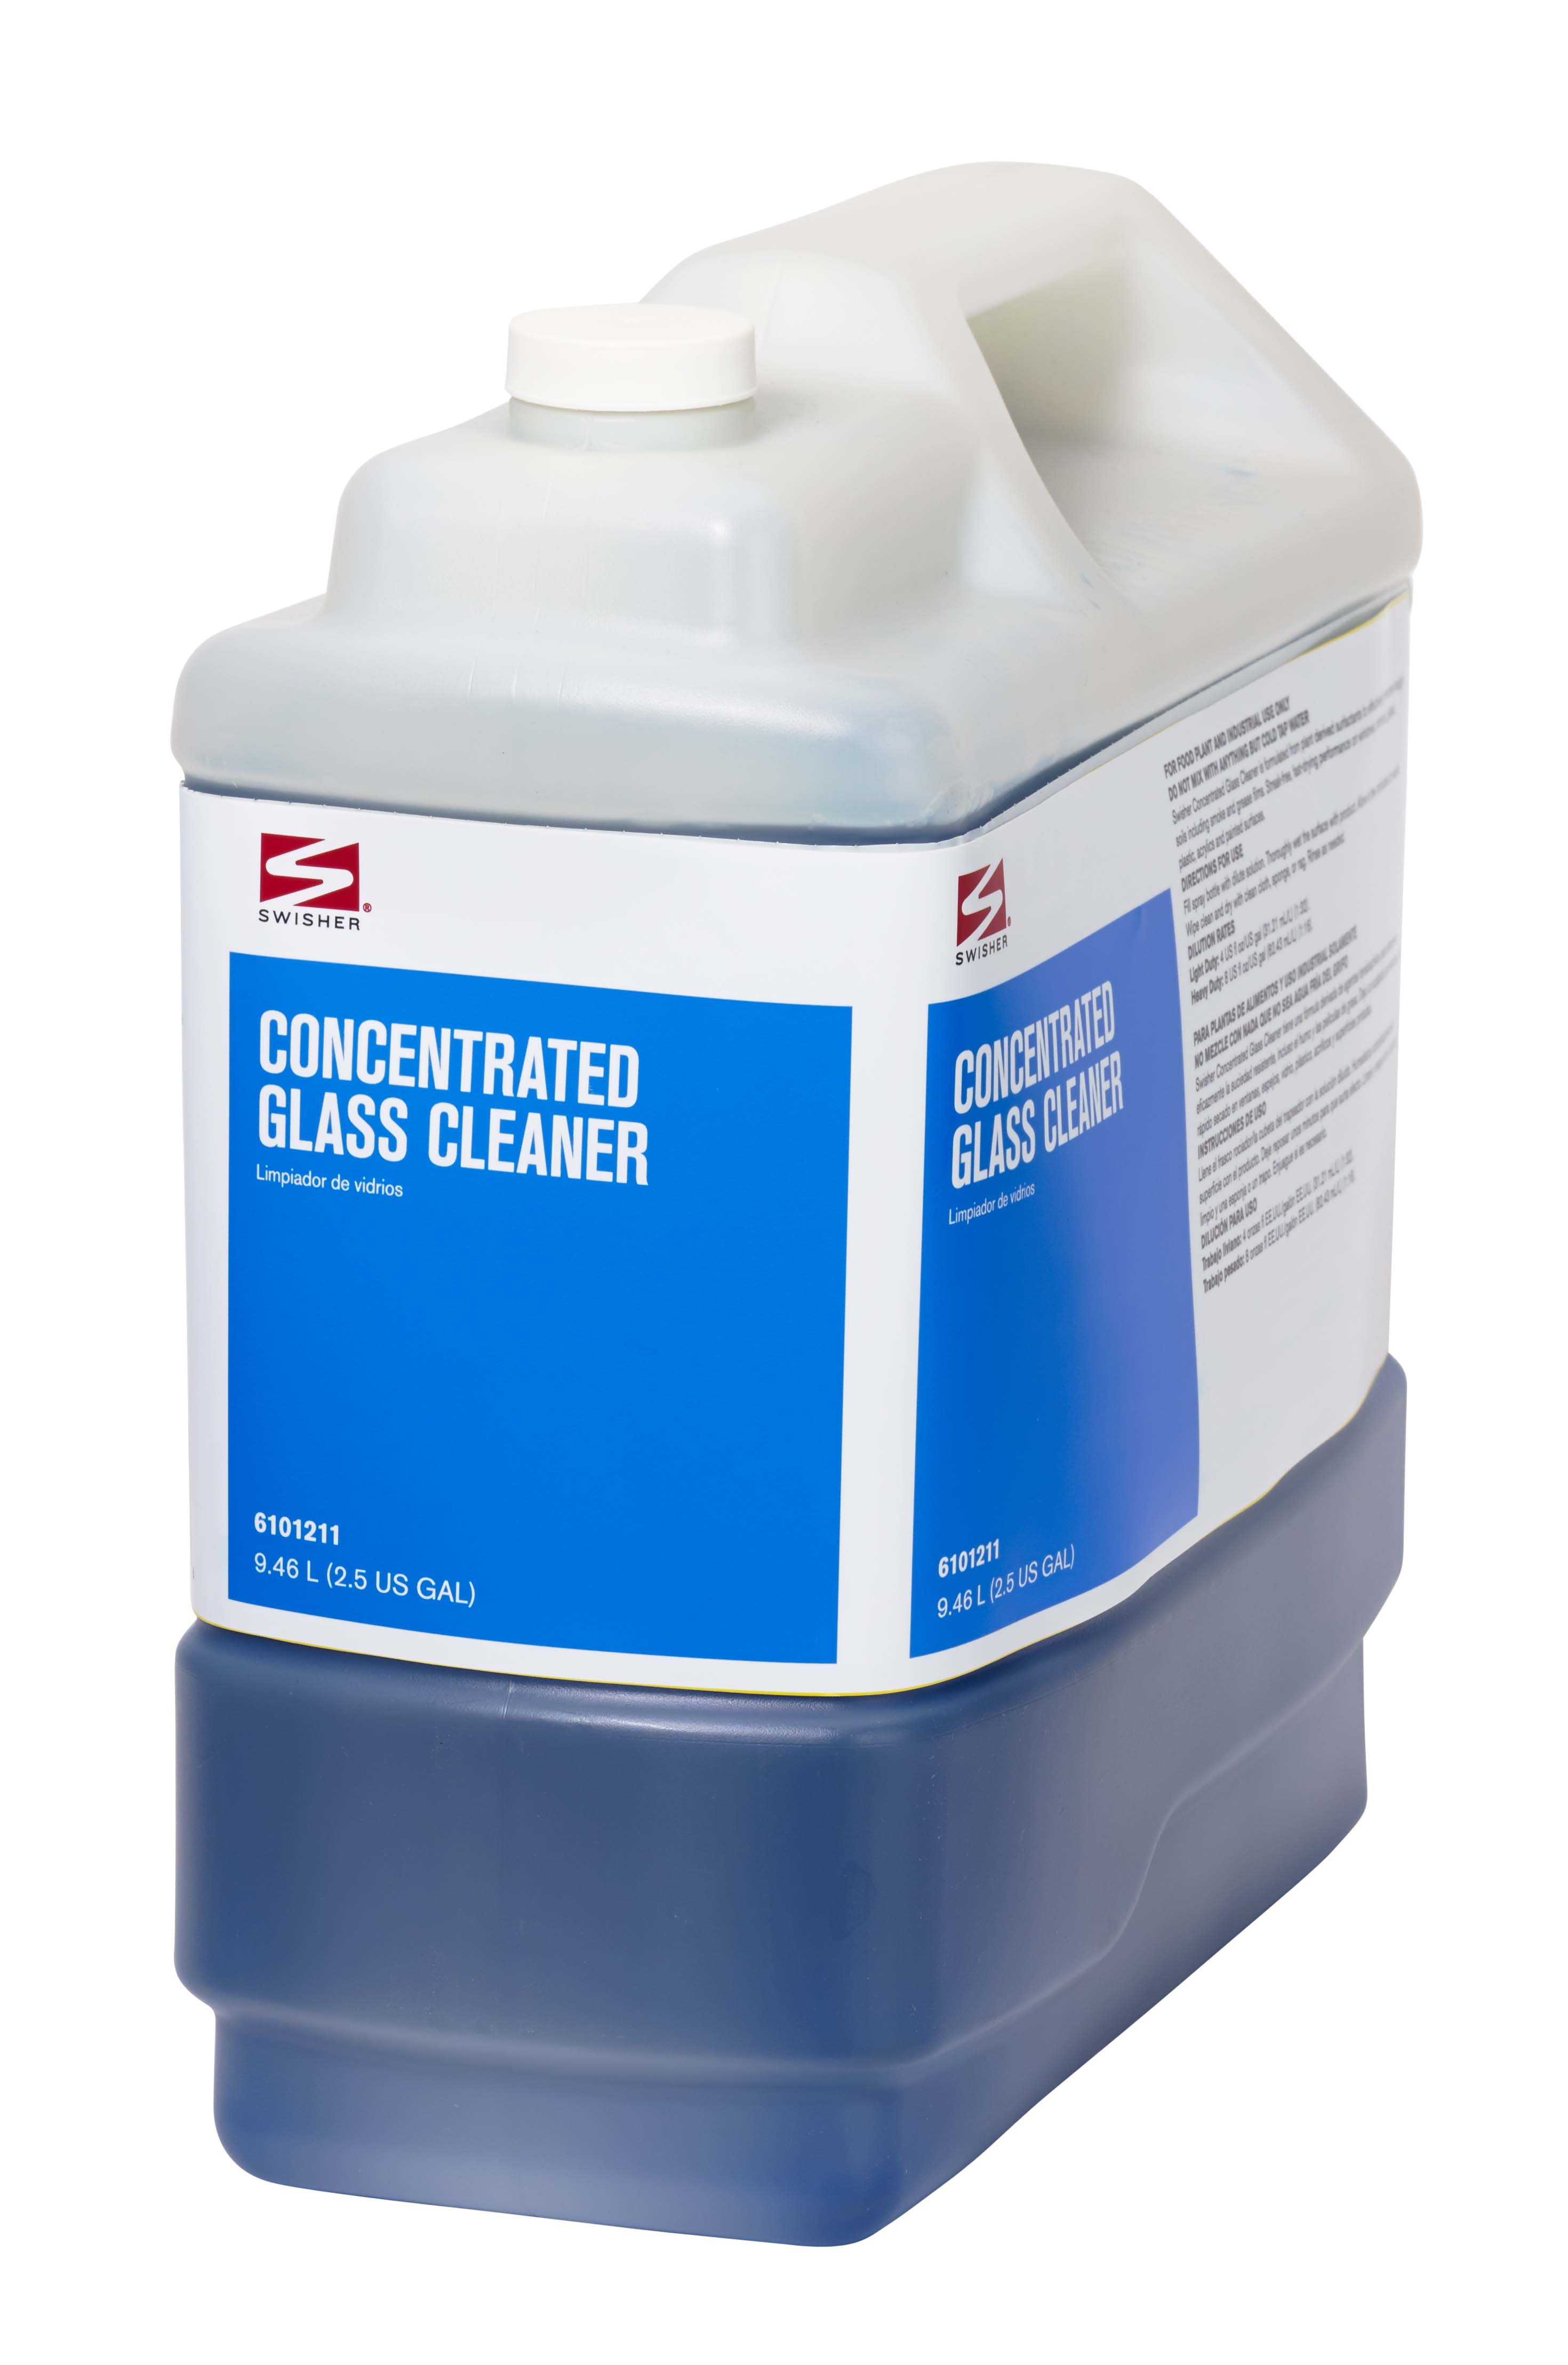 Swisher Concentrated Glass Cleaner